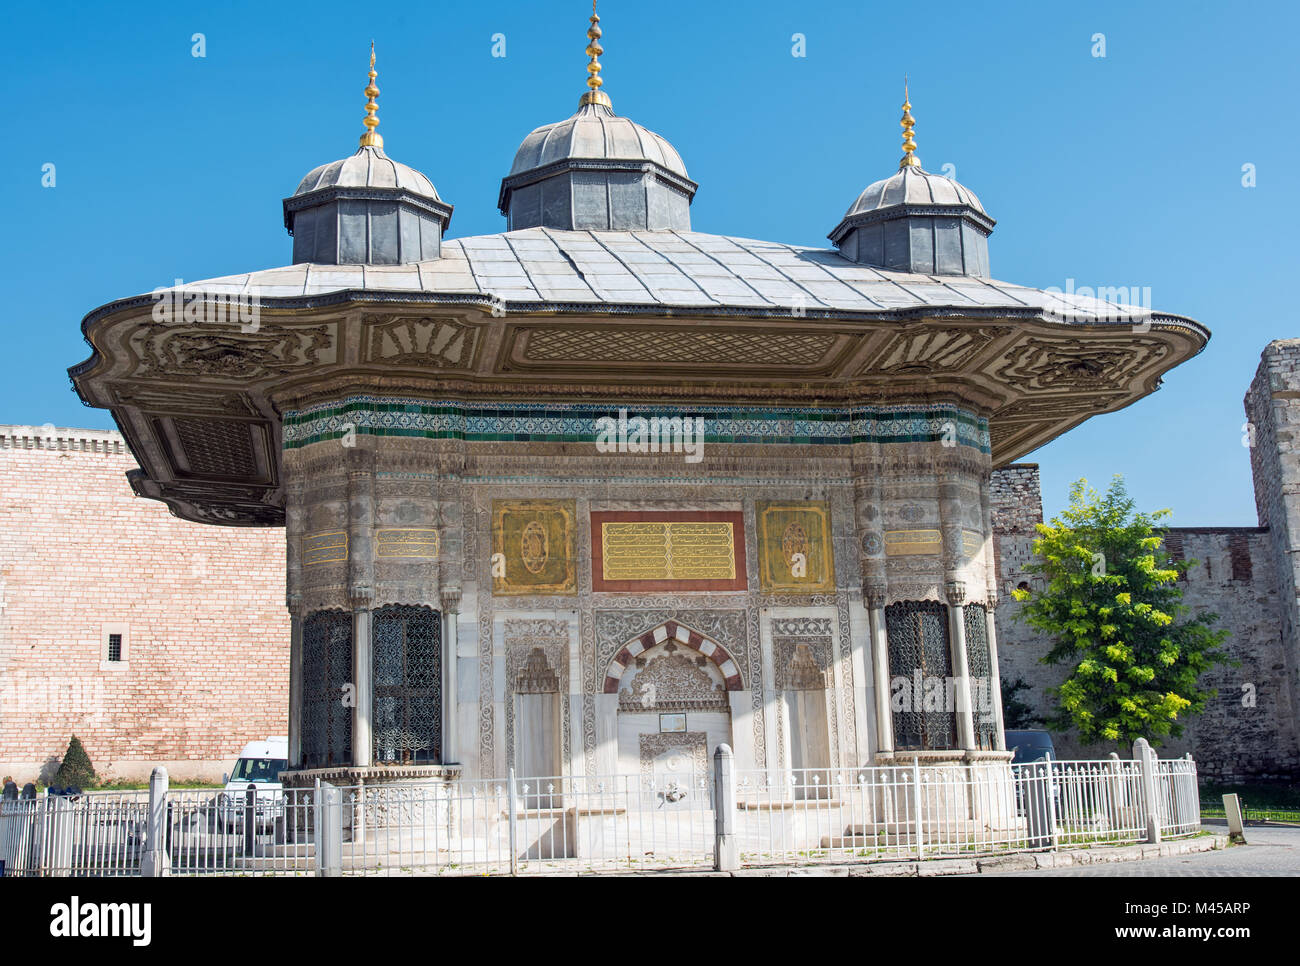 The Fountain of Sultan Ahmed III in Istanbul, Turk - Stock Image